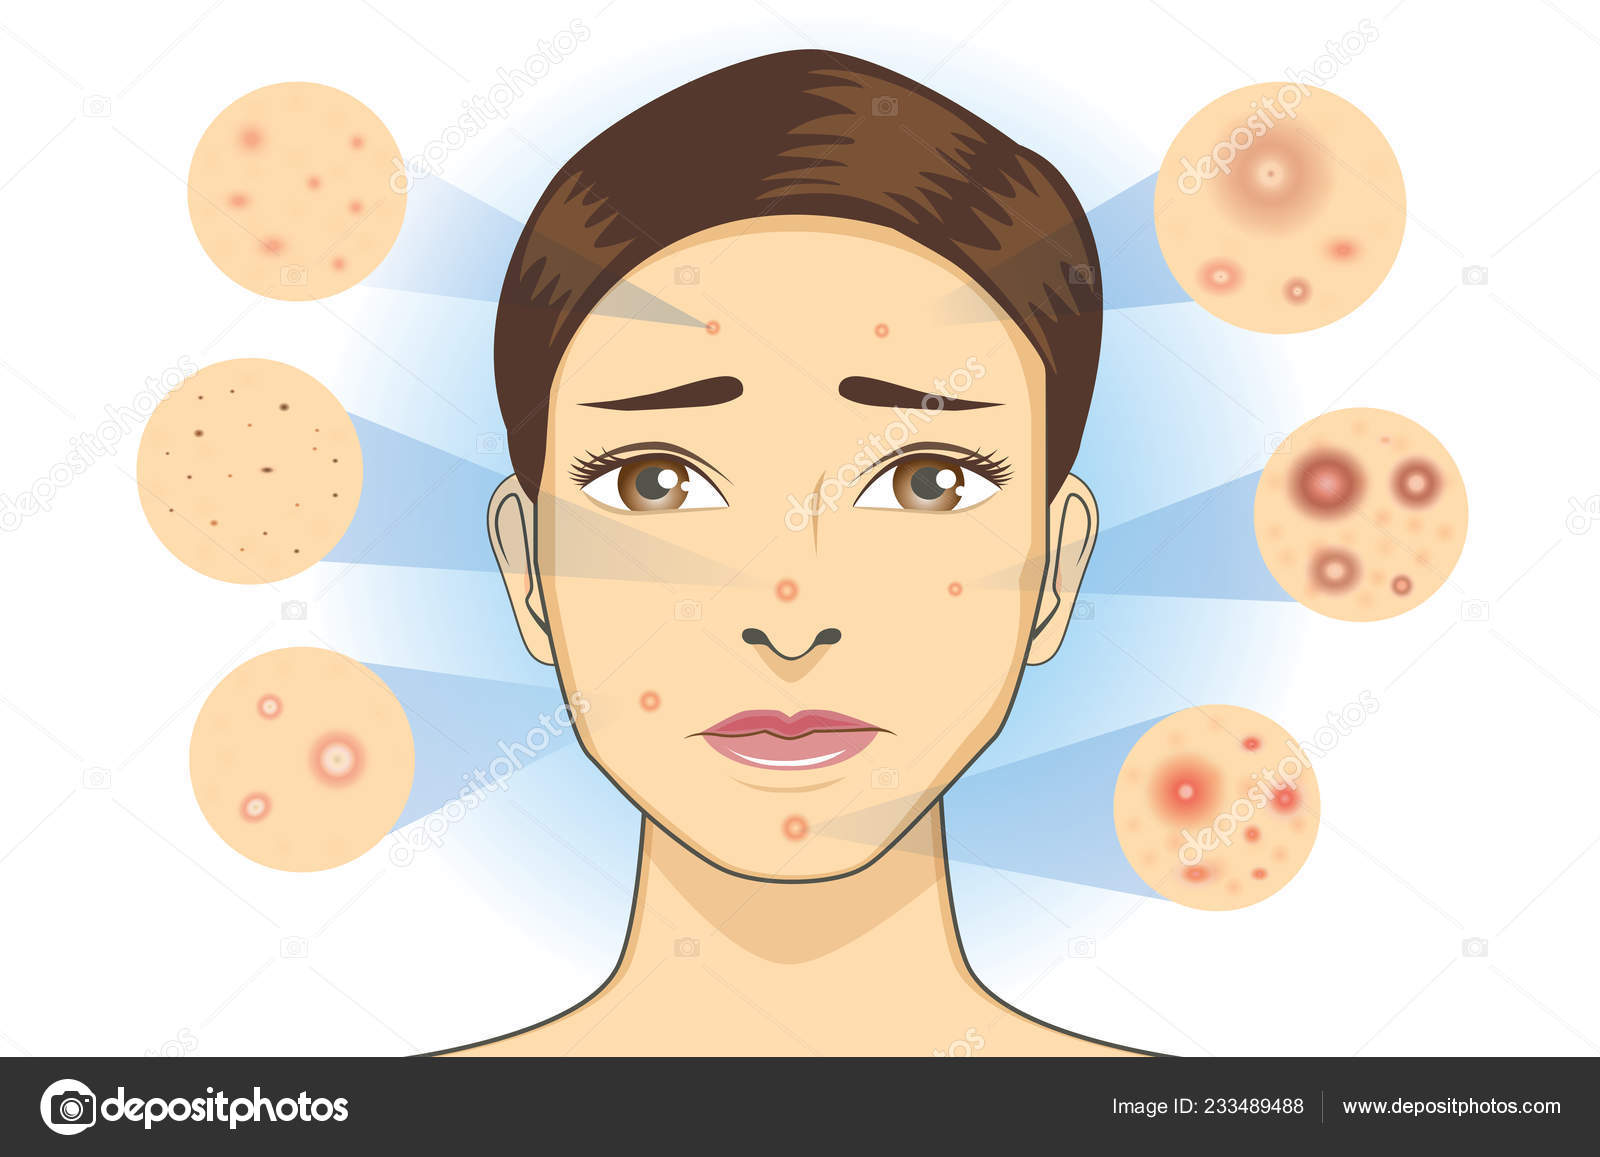 all type acne icon facial skin woman illustration dermatology Epidermis Diagram all type acne icon facial skin woman illustration dermatology diagram \u2014 stock vector